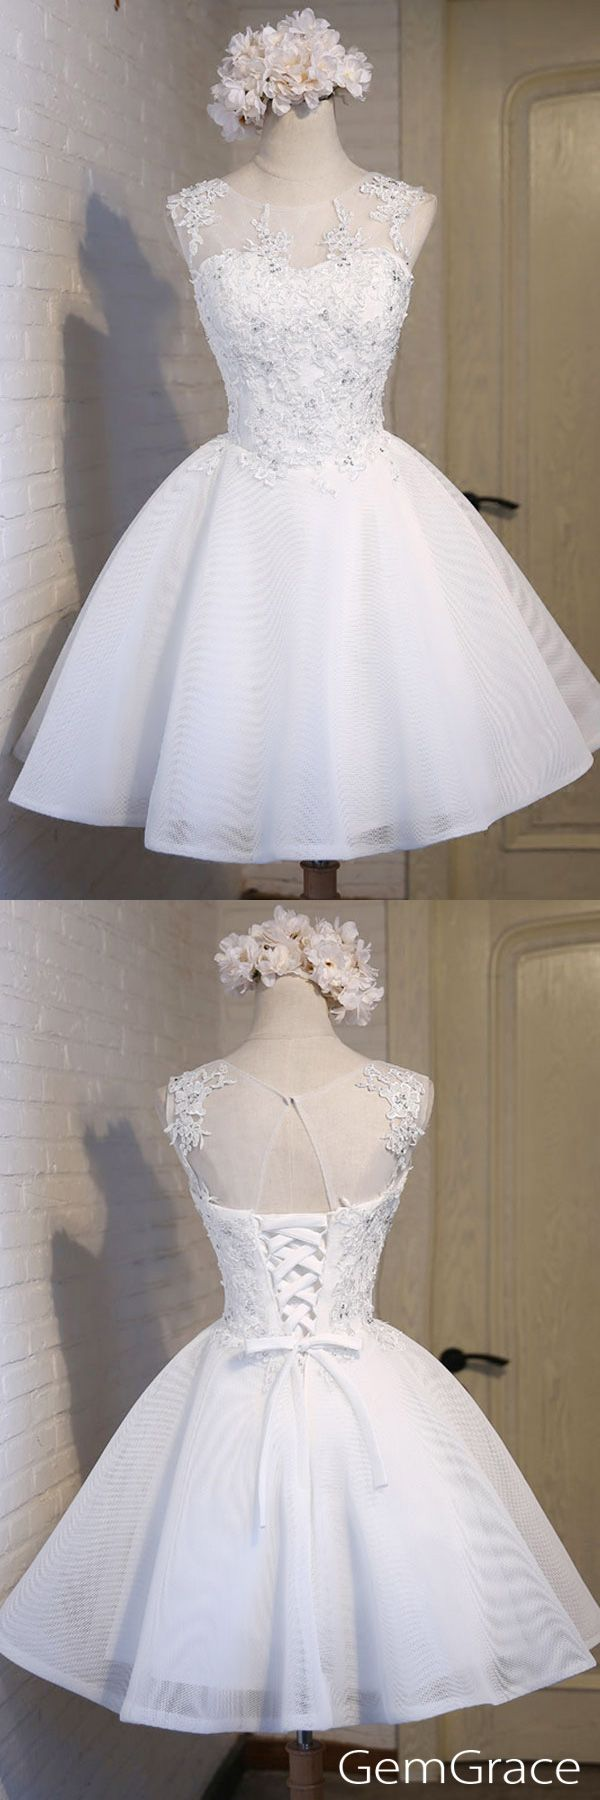 Pure white short party dress, pro custom-made by GemGrace